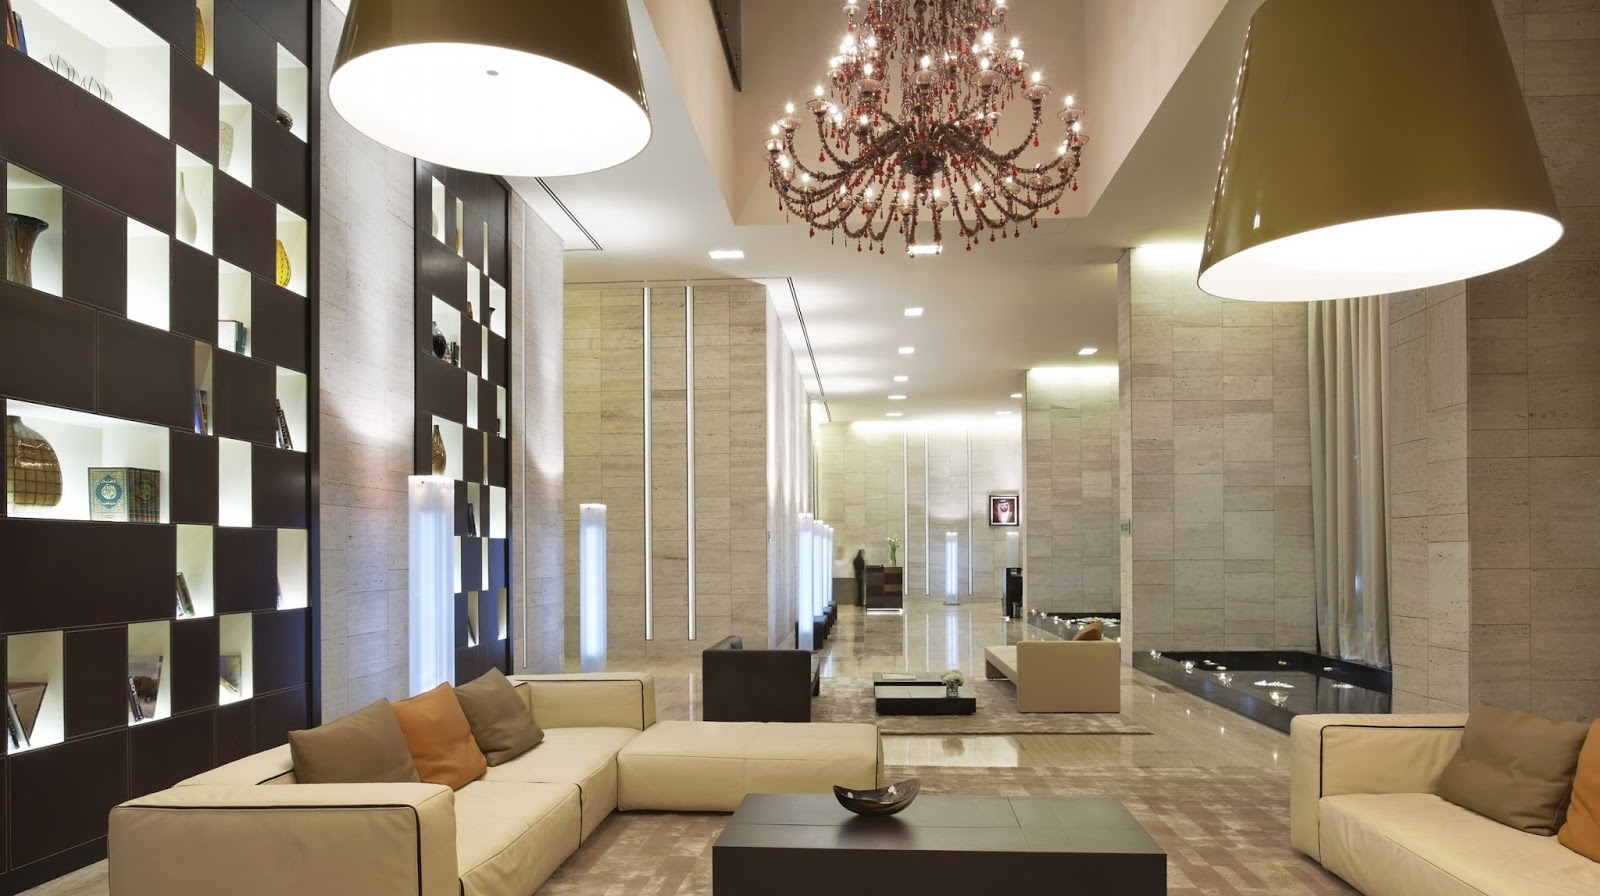 Best interior design companies and interior designers in dubai Creative interior ideas